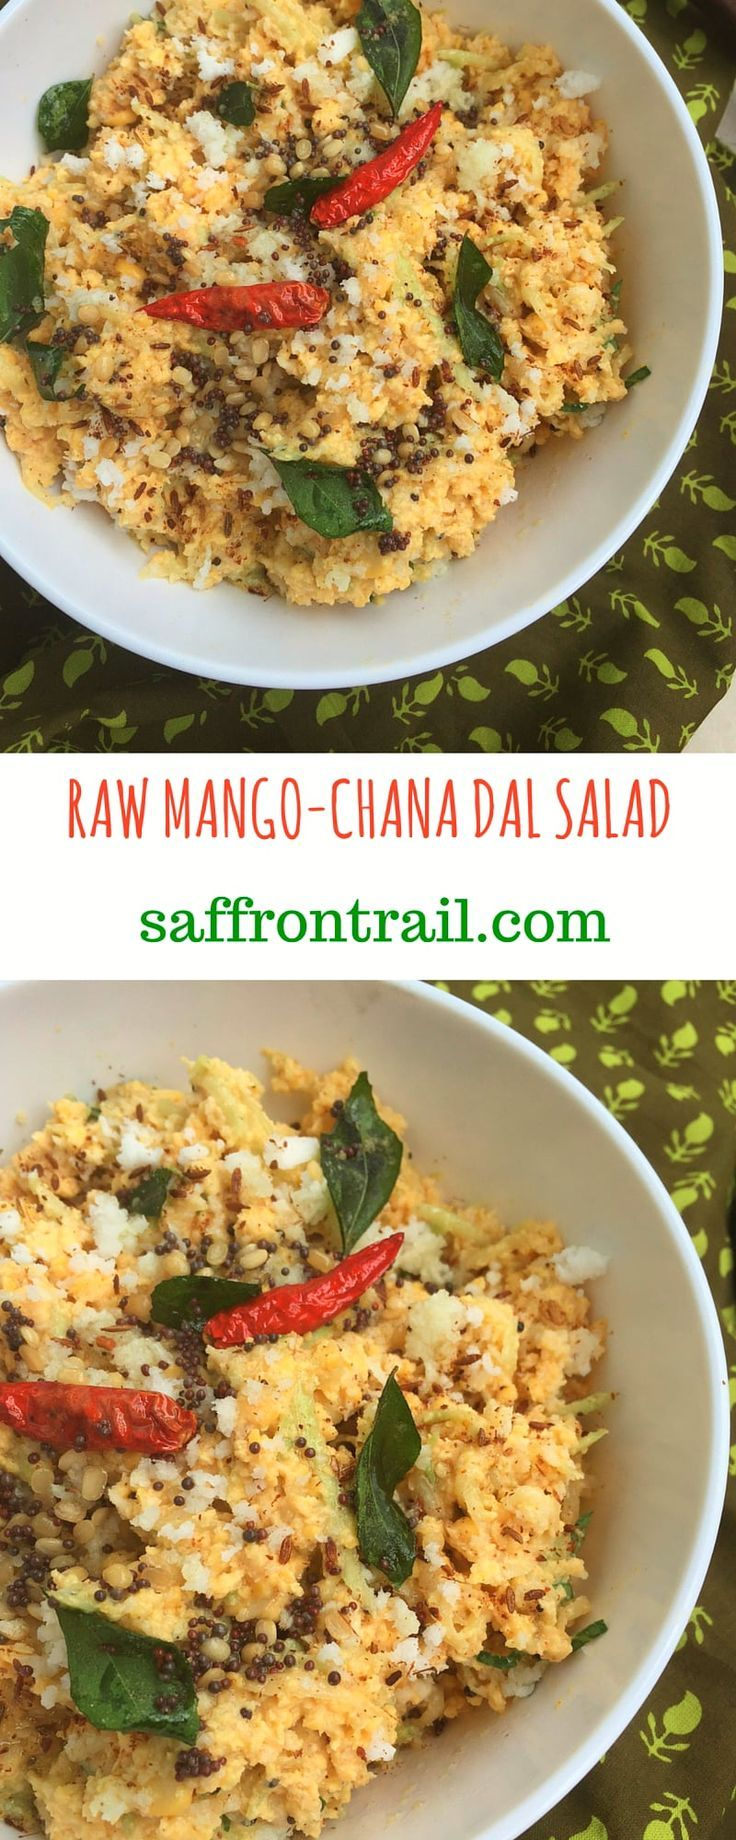 A simple raw mango and chana dal salad, no cooking required. Make use of the raw mangoes in season to prepare this delicious Indian meal accompaniment.